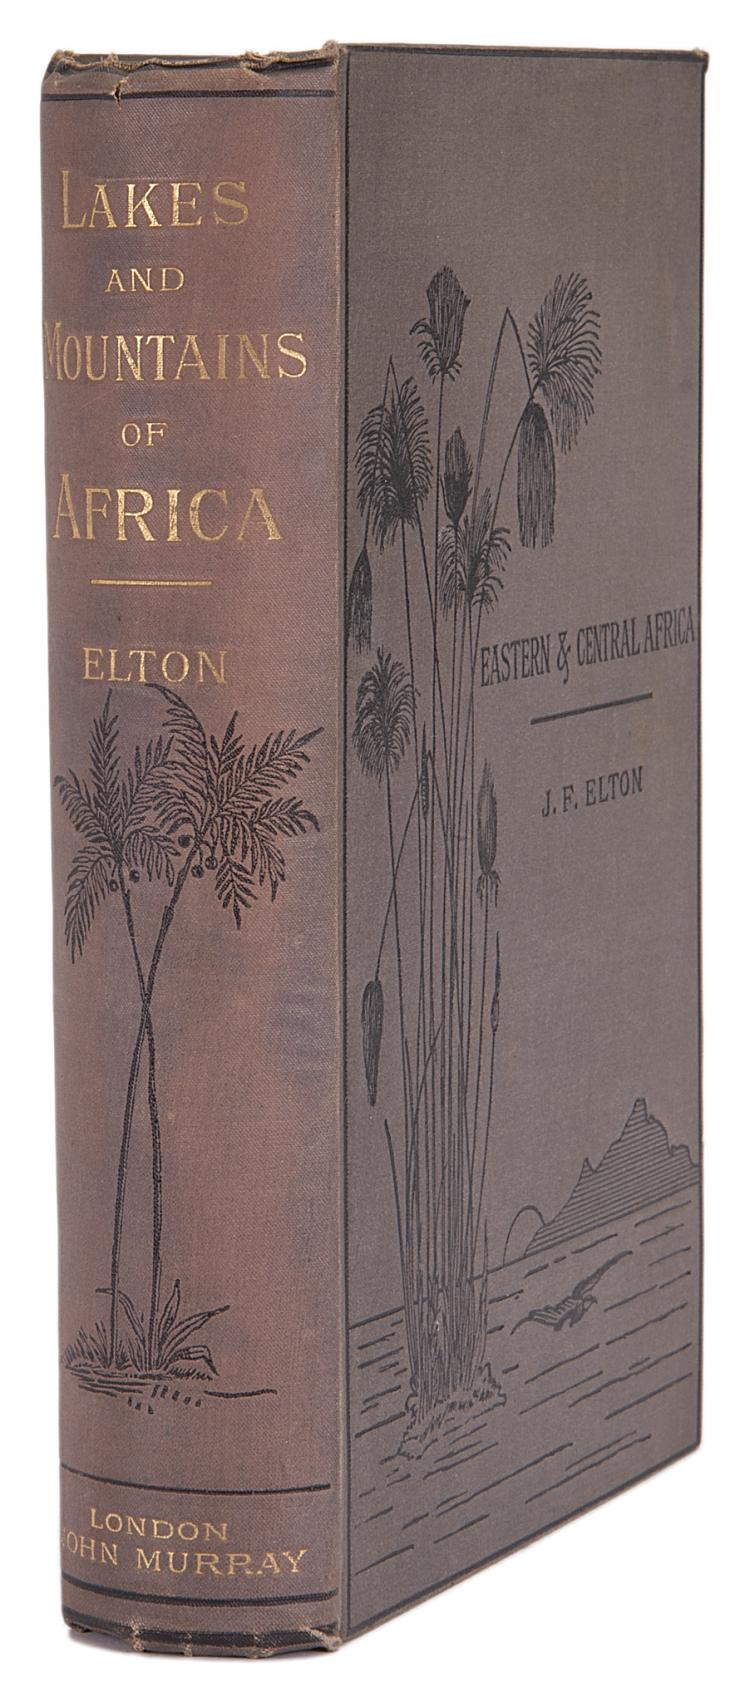 Africa.- Elton (J.Frederic) Travels and Researches among the Lakes and Mountains of Eastern & Central Africa, 1st ed., orig. cloth, 1879.